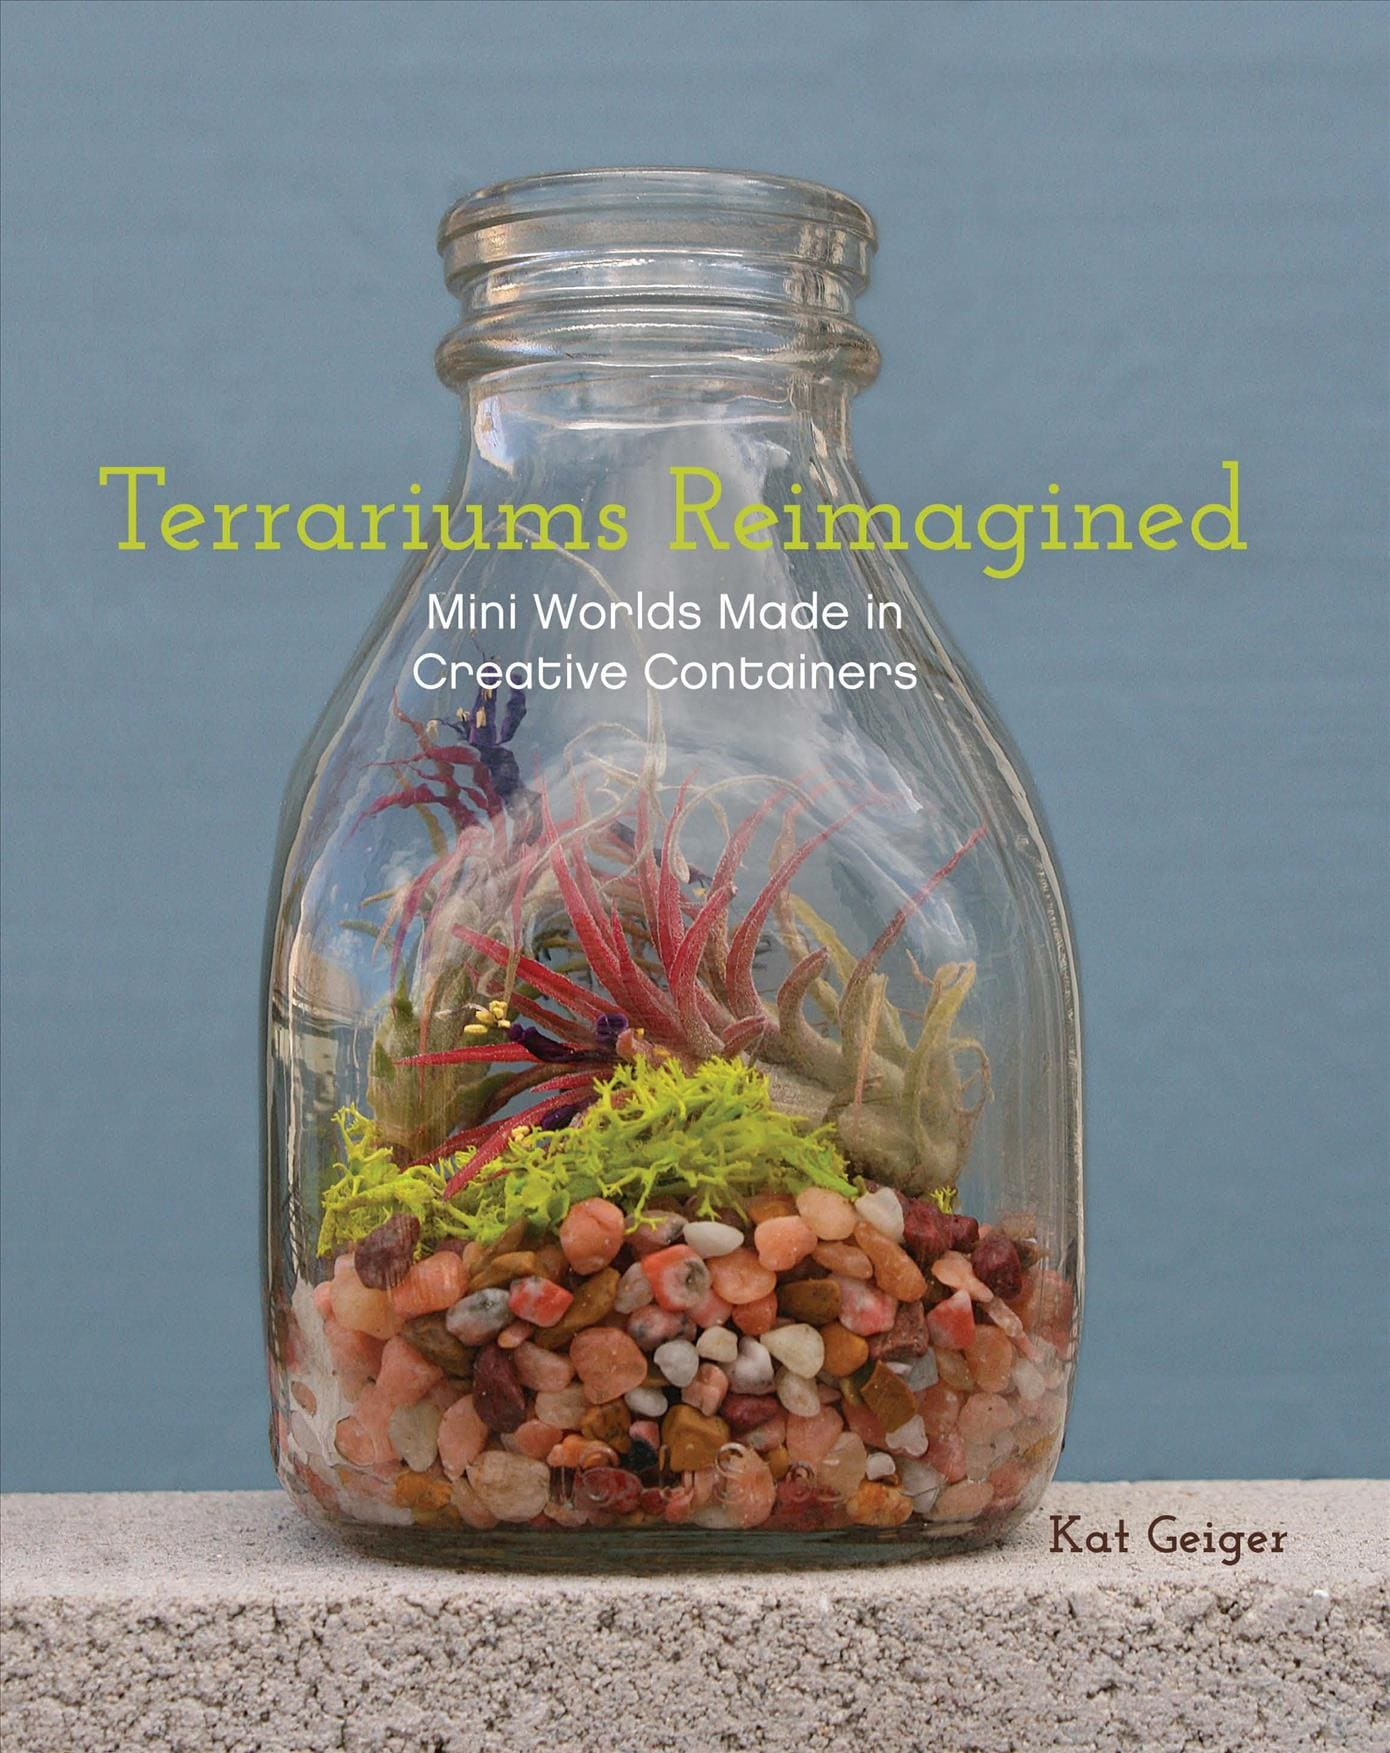 Terrariums Reimagined: Mini Worlds Made in Creative Containers (Paperback)